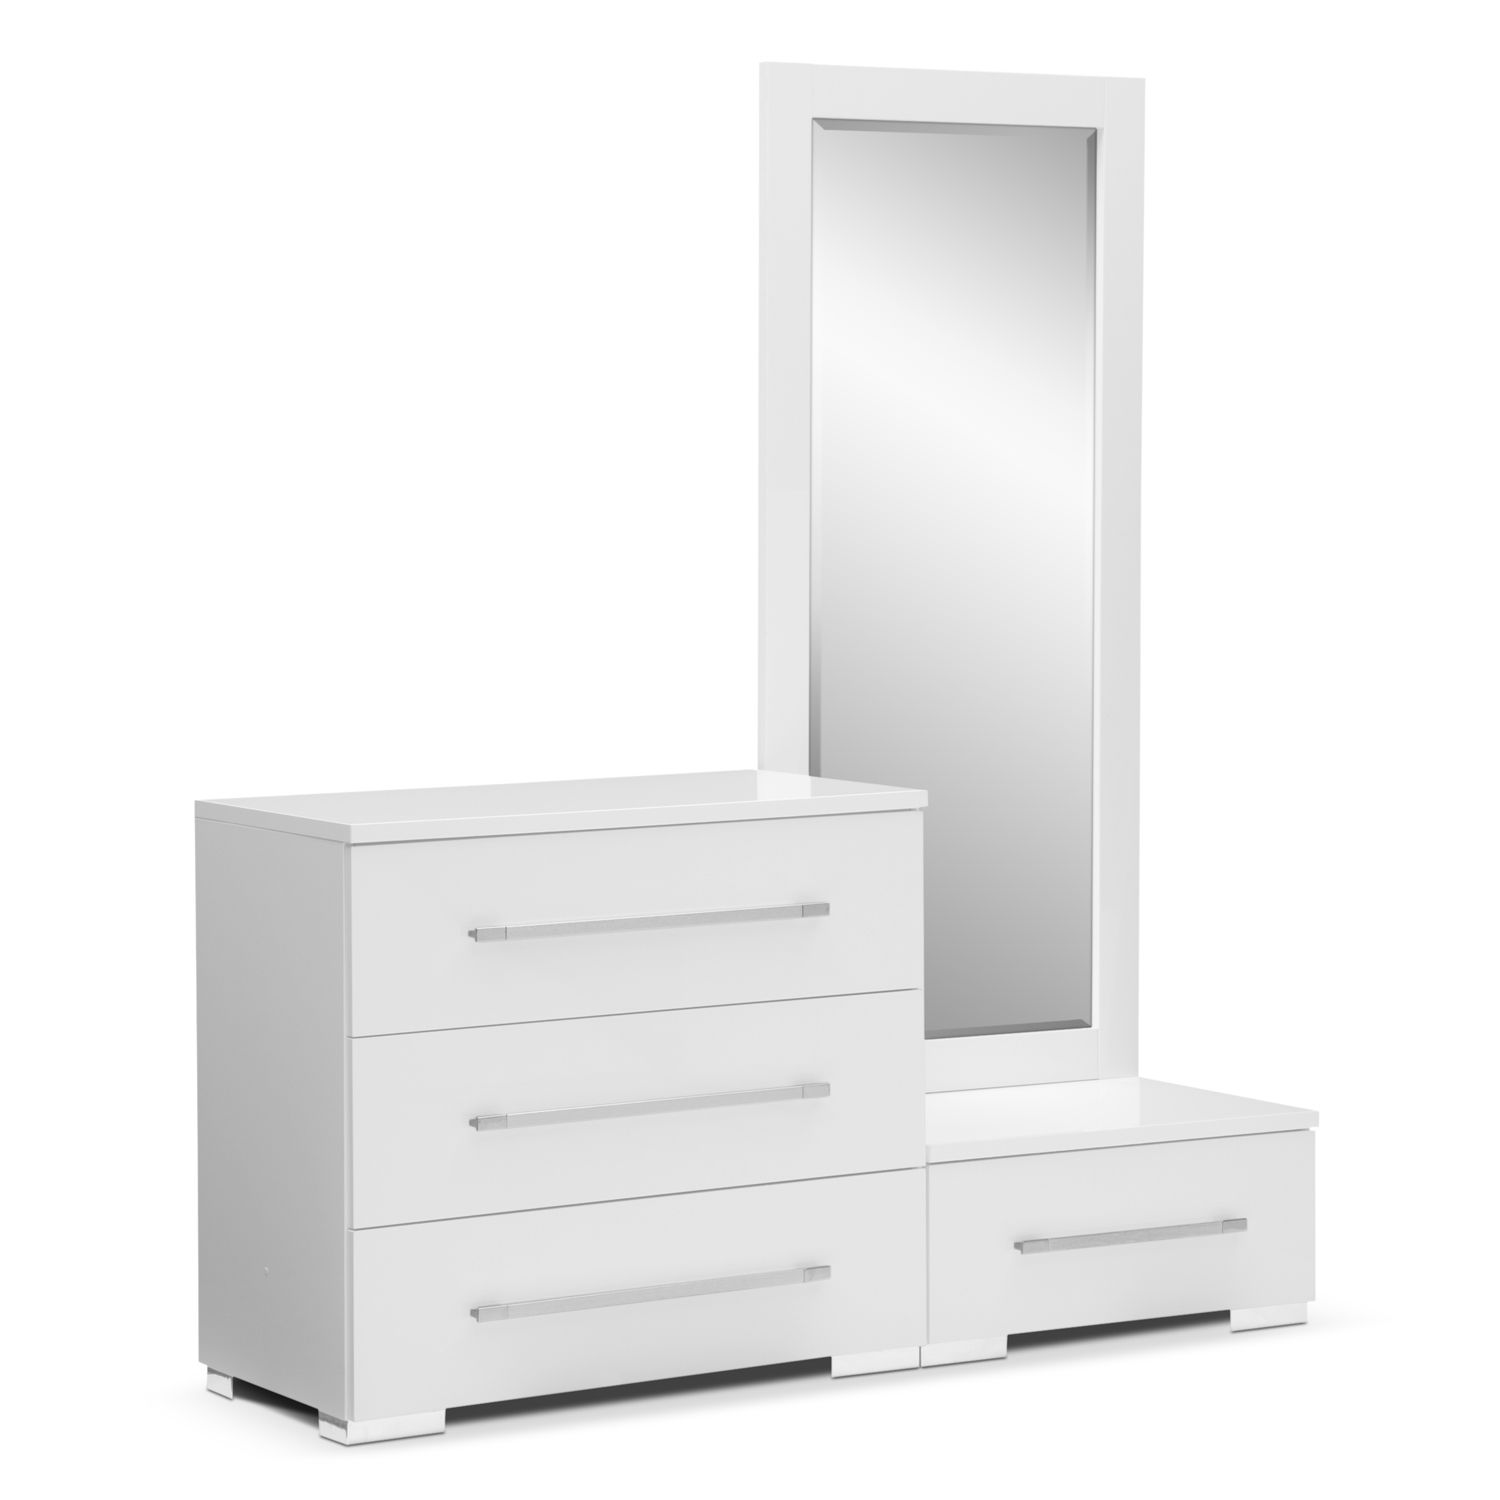 Mirrors For Bedroom Dressers Dimora White Bedroom Dressing Dresser Mirror With Step Value